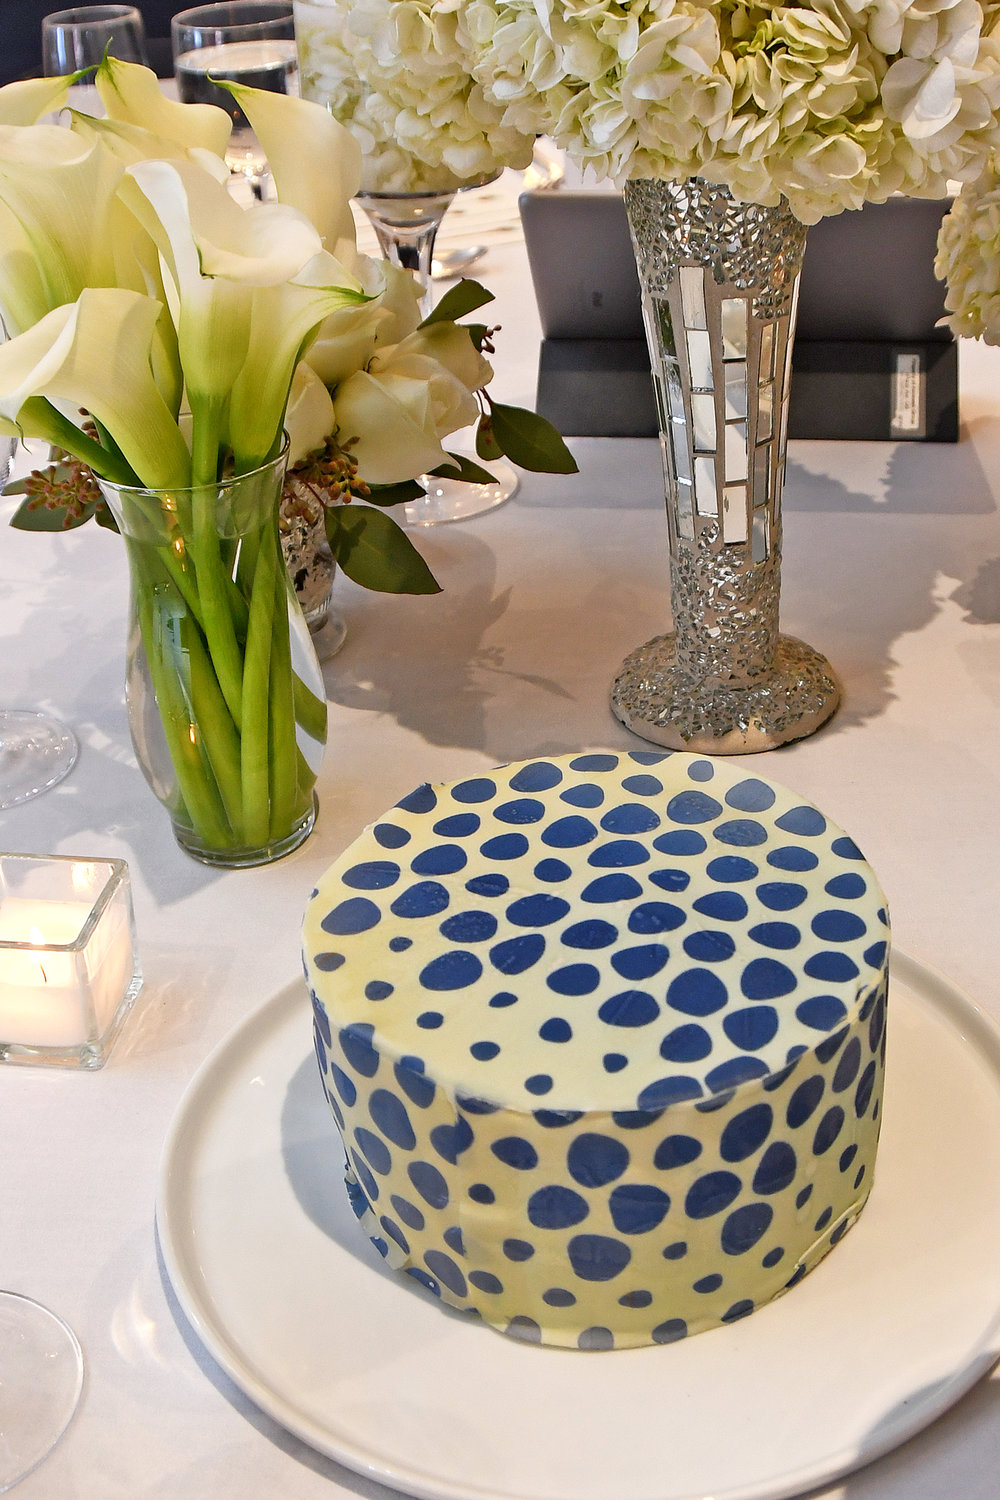 Cake with  Chefanie Sheet  inspired by one of David Rockwell's fabrics. Photo credit: Lukas Maverick Greyson